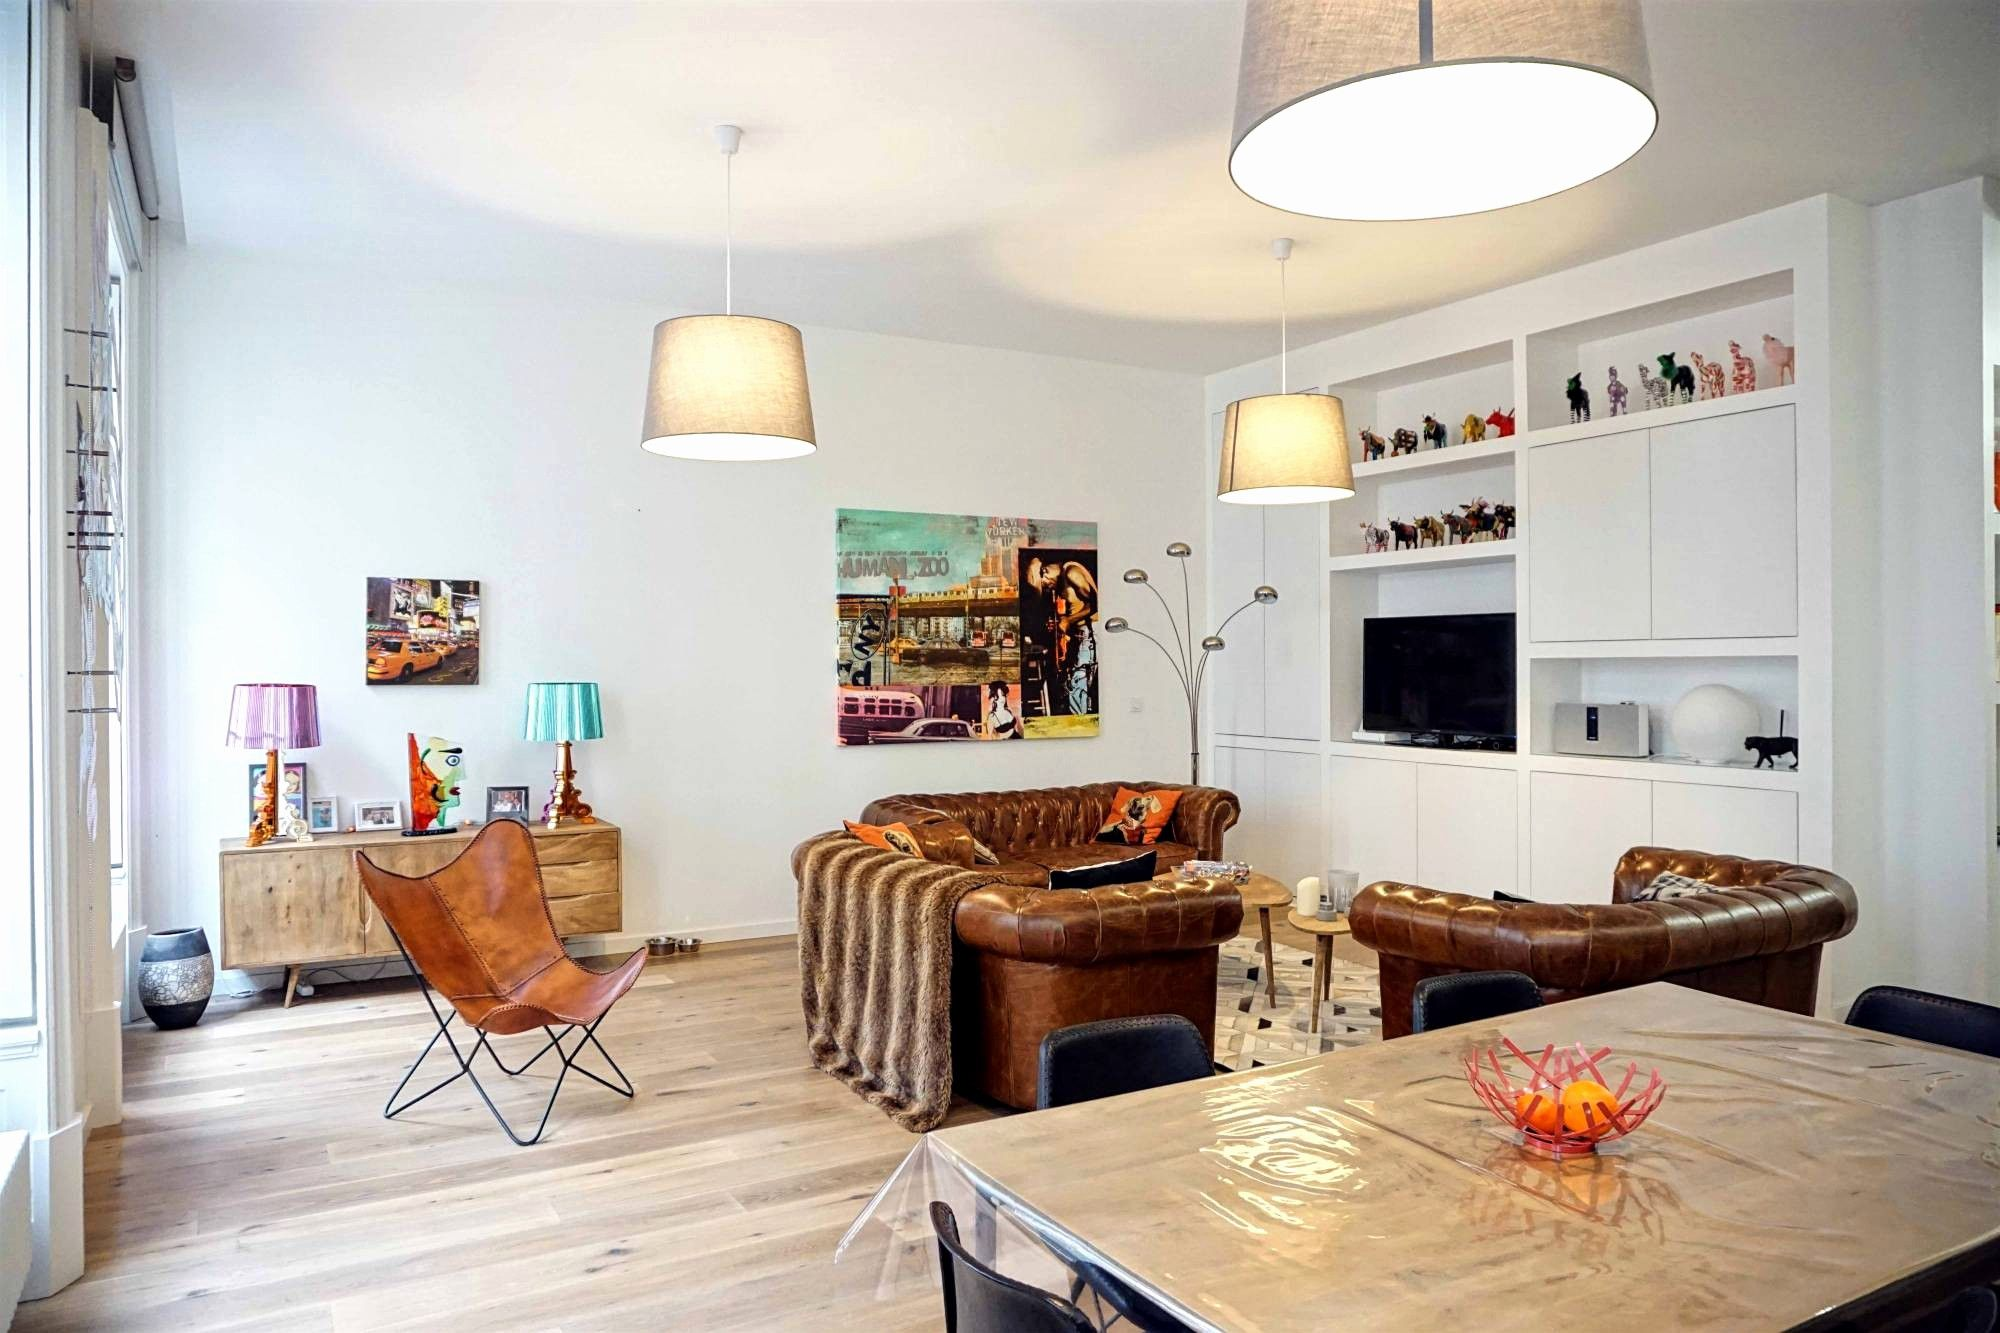 Awesome Vente Appartement Montpellier Le Bon Coin Home Home Decor Montpellier